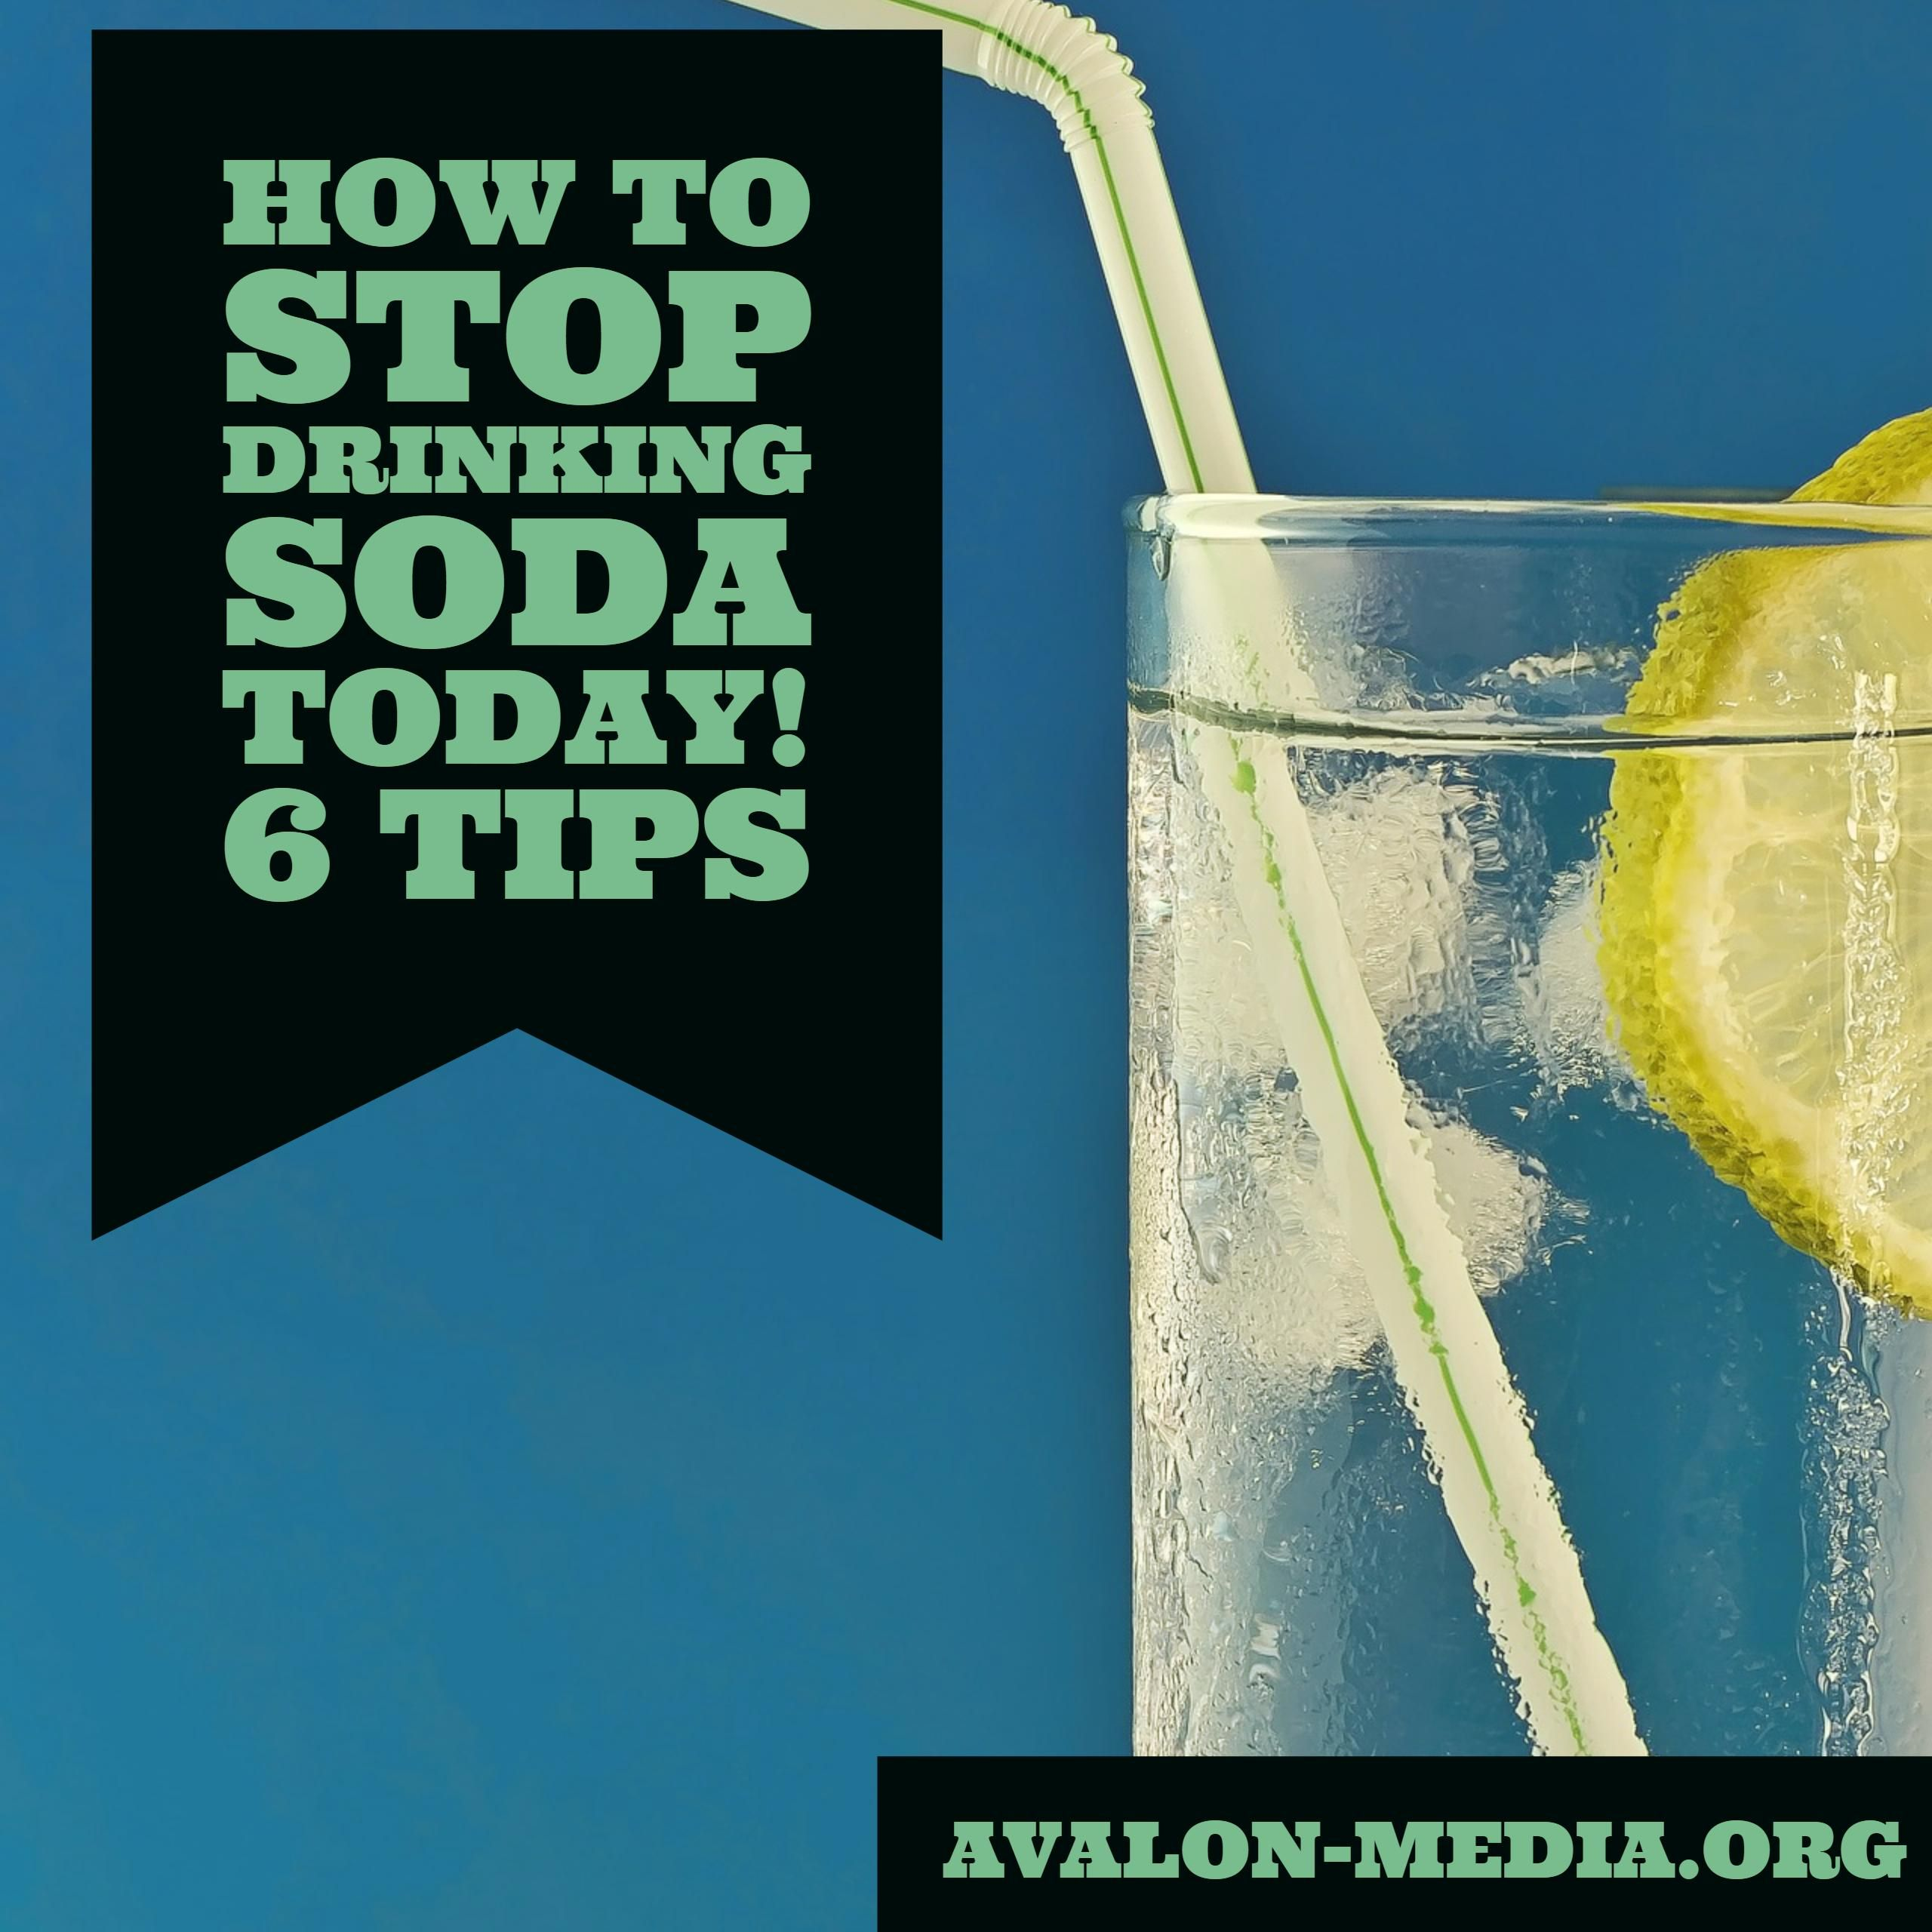 How To Stop Drinking Soda Today! 6 Tips #health #wellness